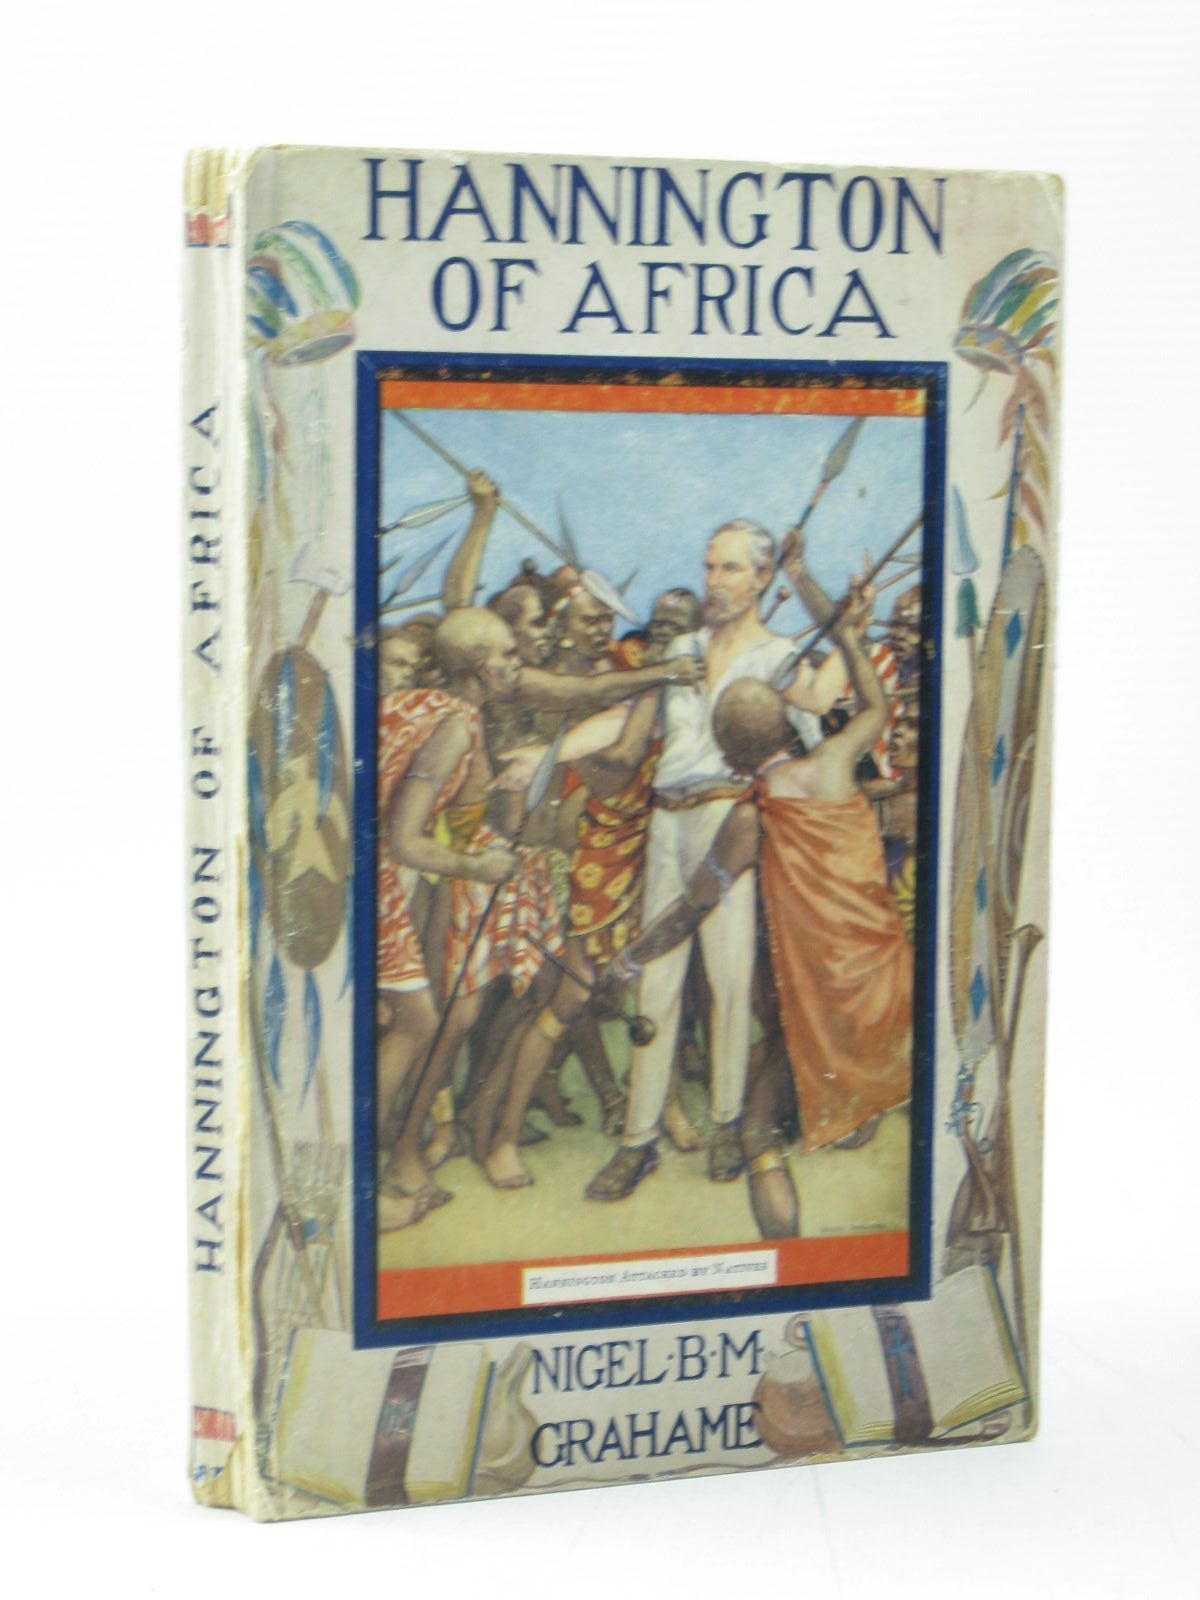 Photo of HANNINGTON OF AFRICA written by Grahame, Nigel B.M. published by Seeley, Service & Co. Ltd. (STOCK CODE: 1313054)  for sale by Stella & Rose's Books